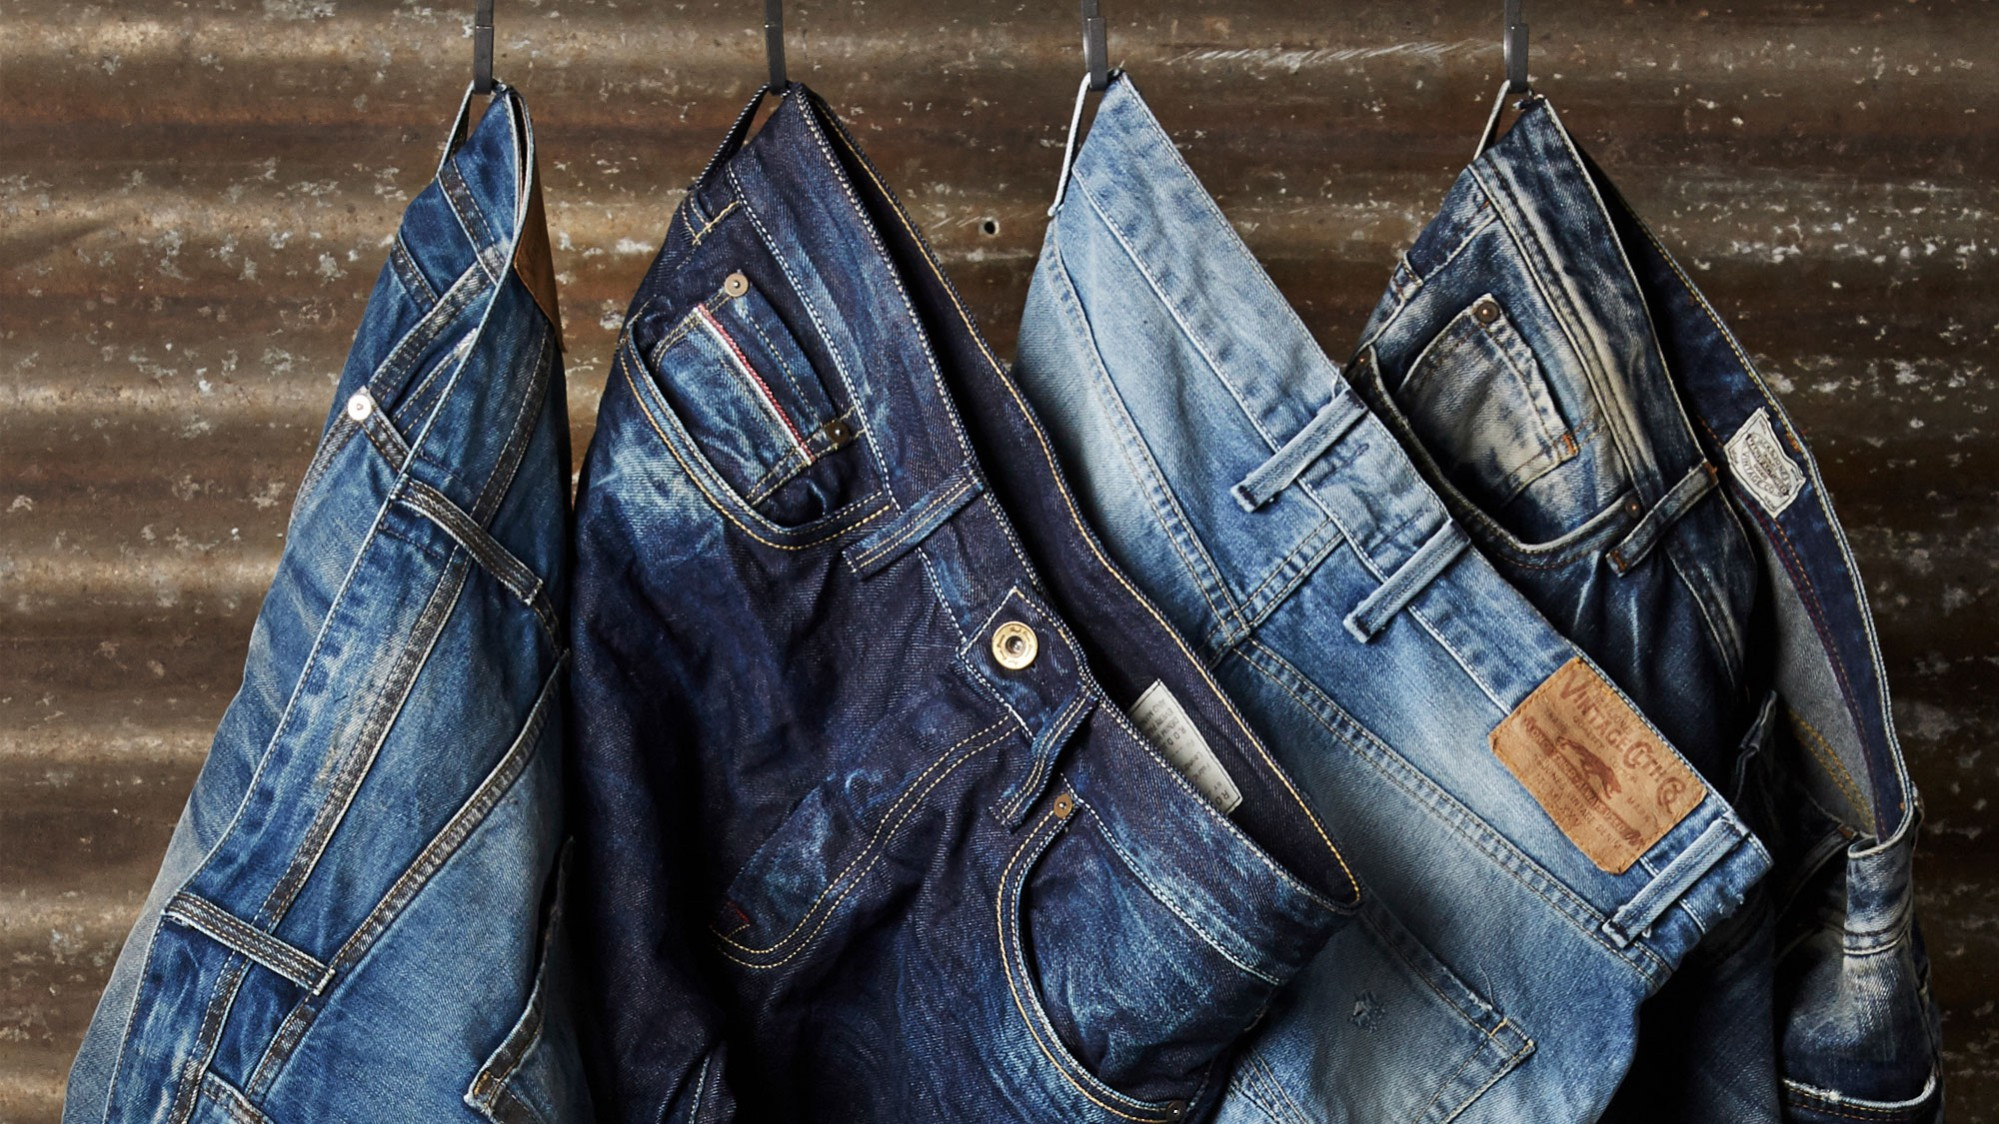 Aarvee Denims | Denim-Jeans manufacturing company in India